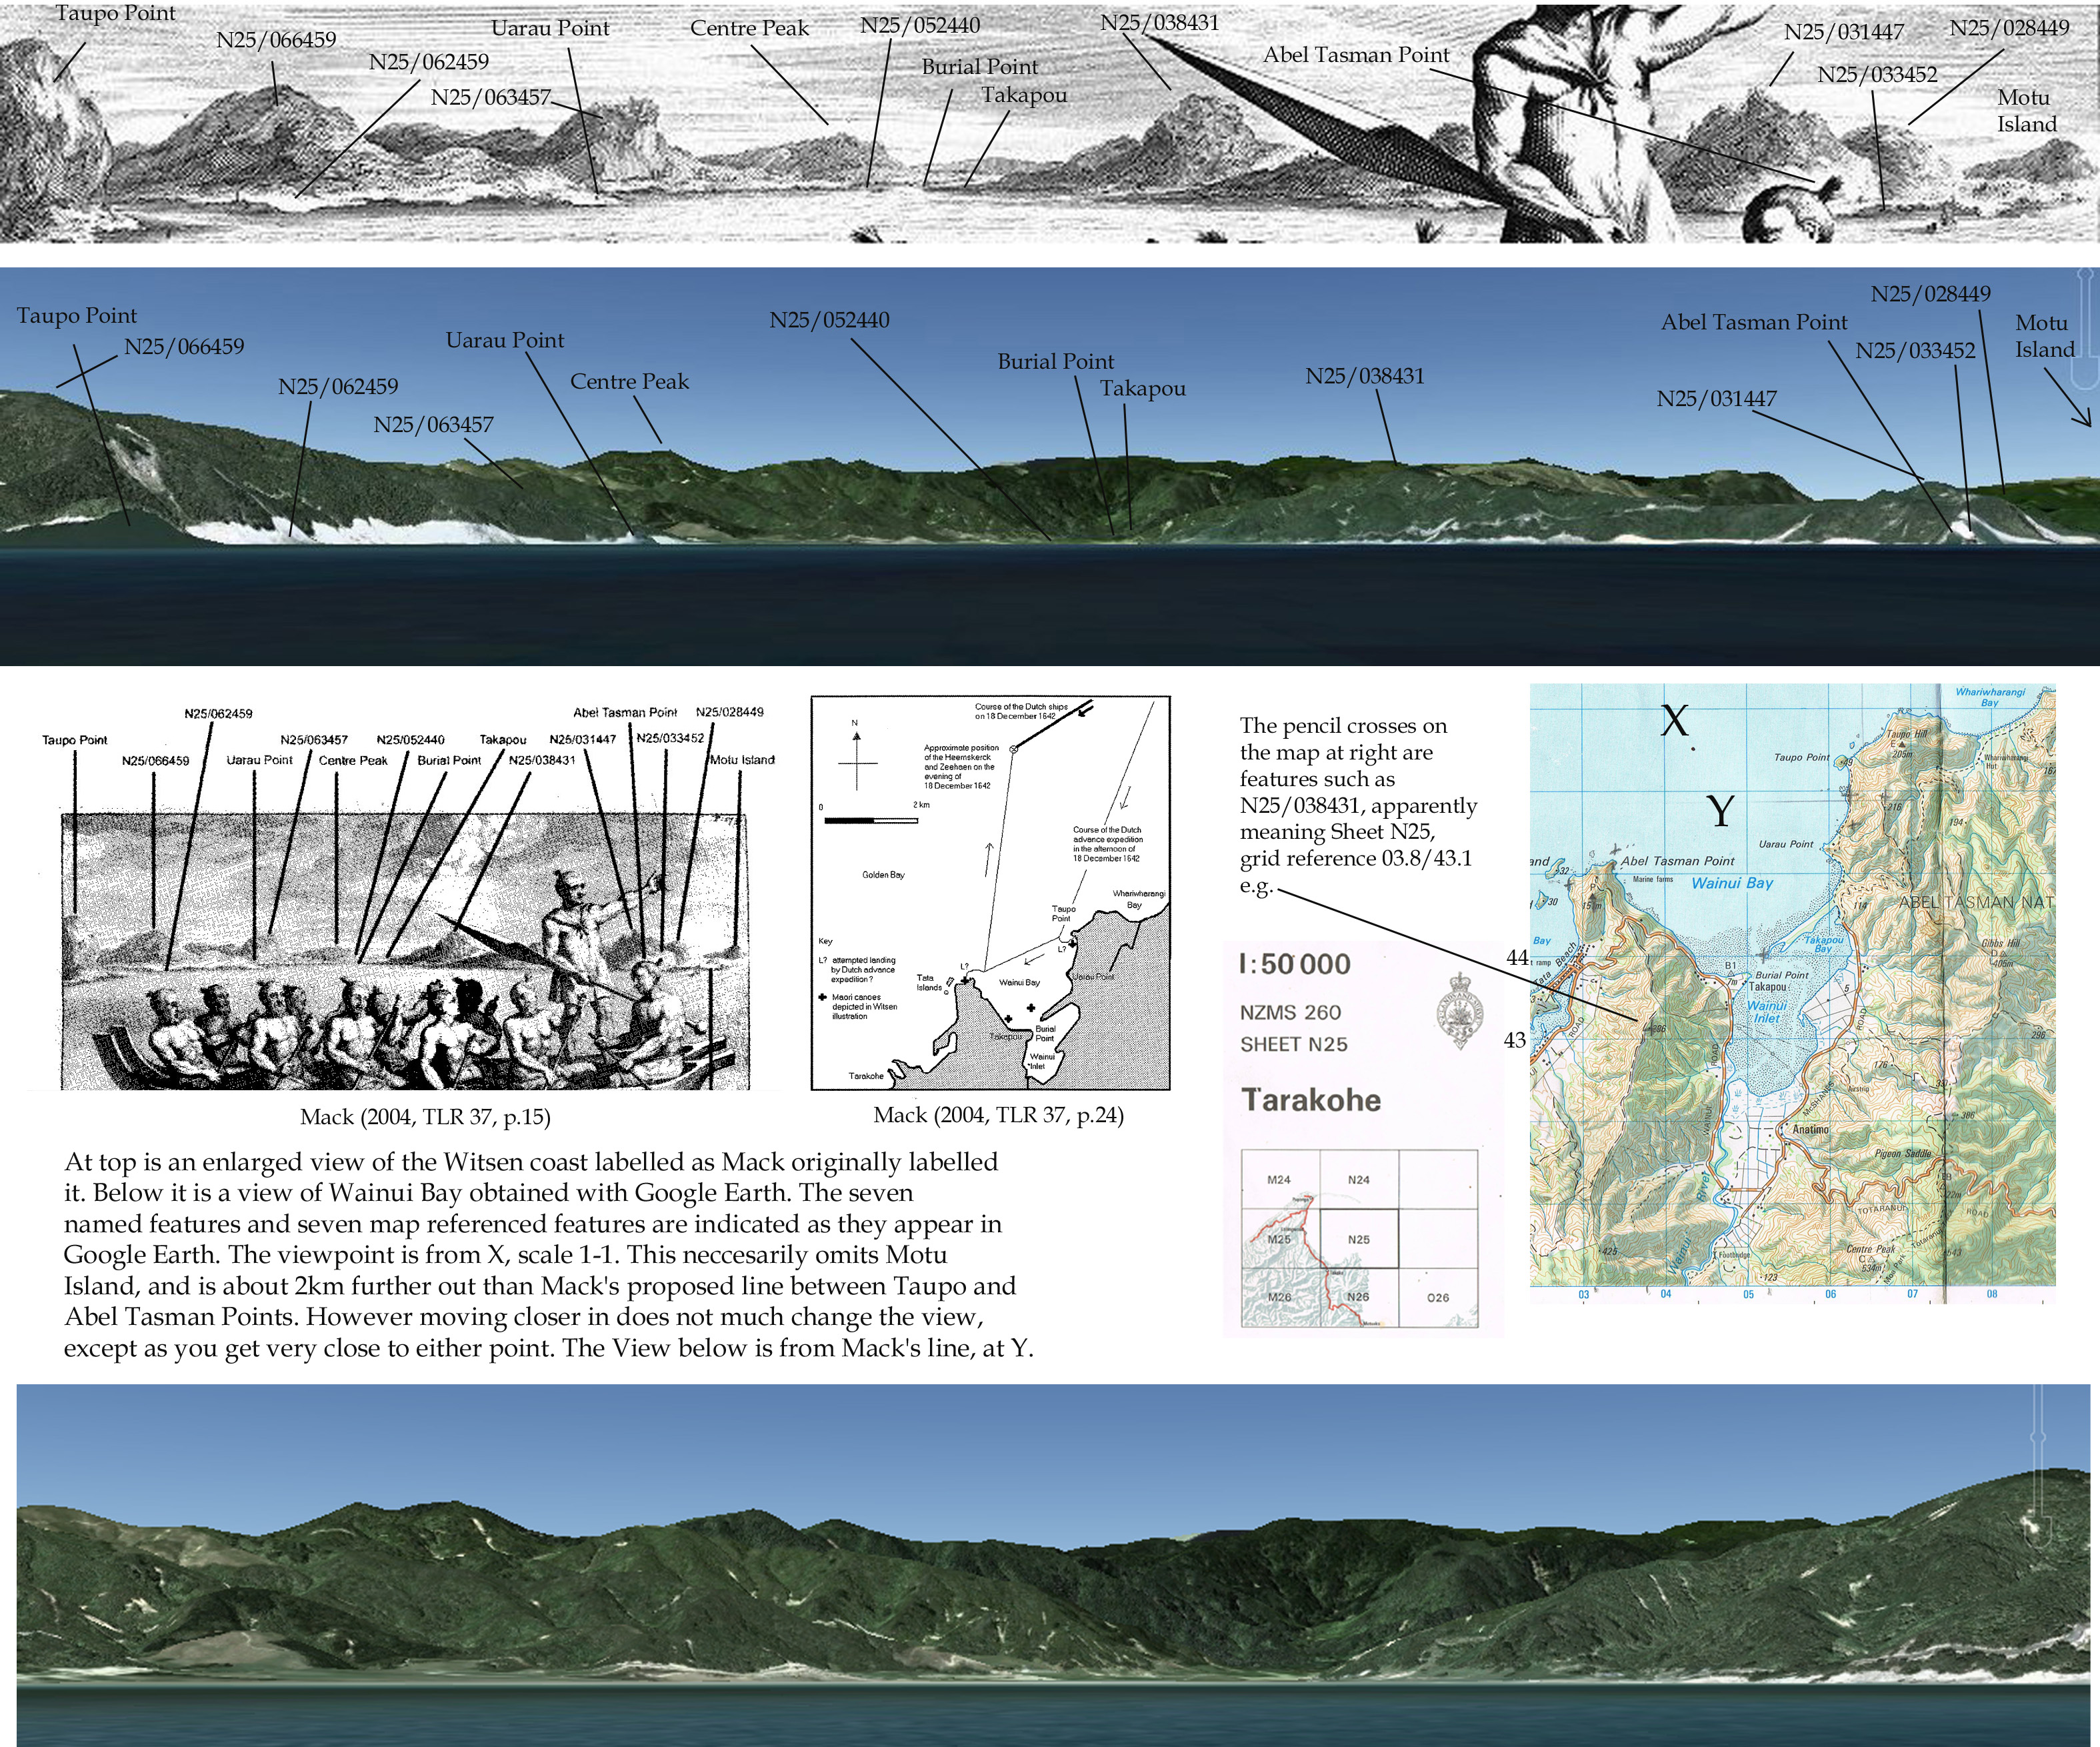 Wainui images compared copy